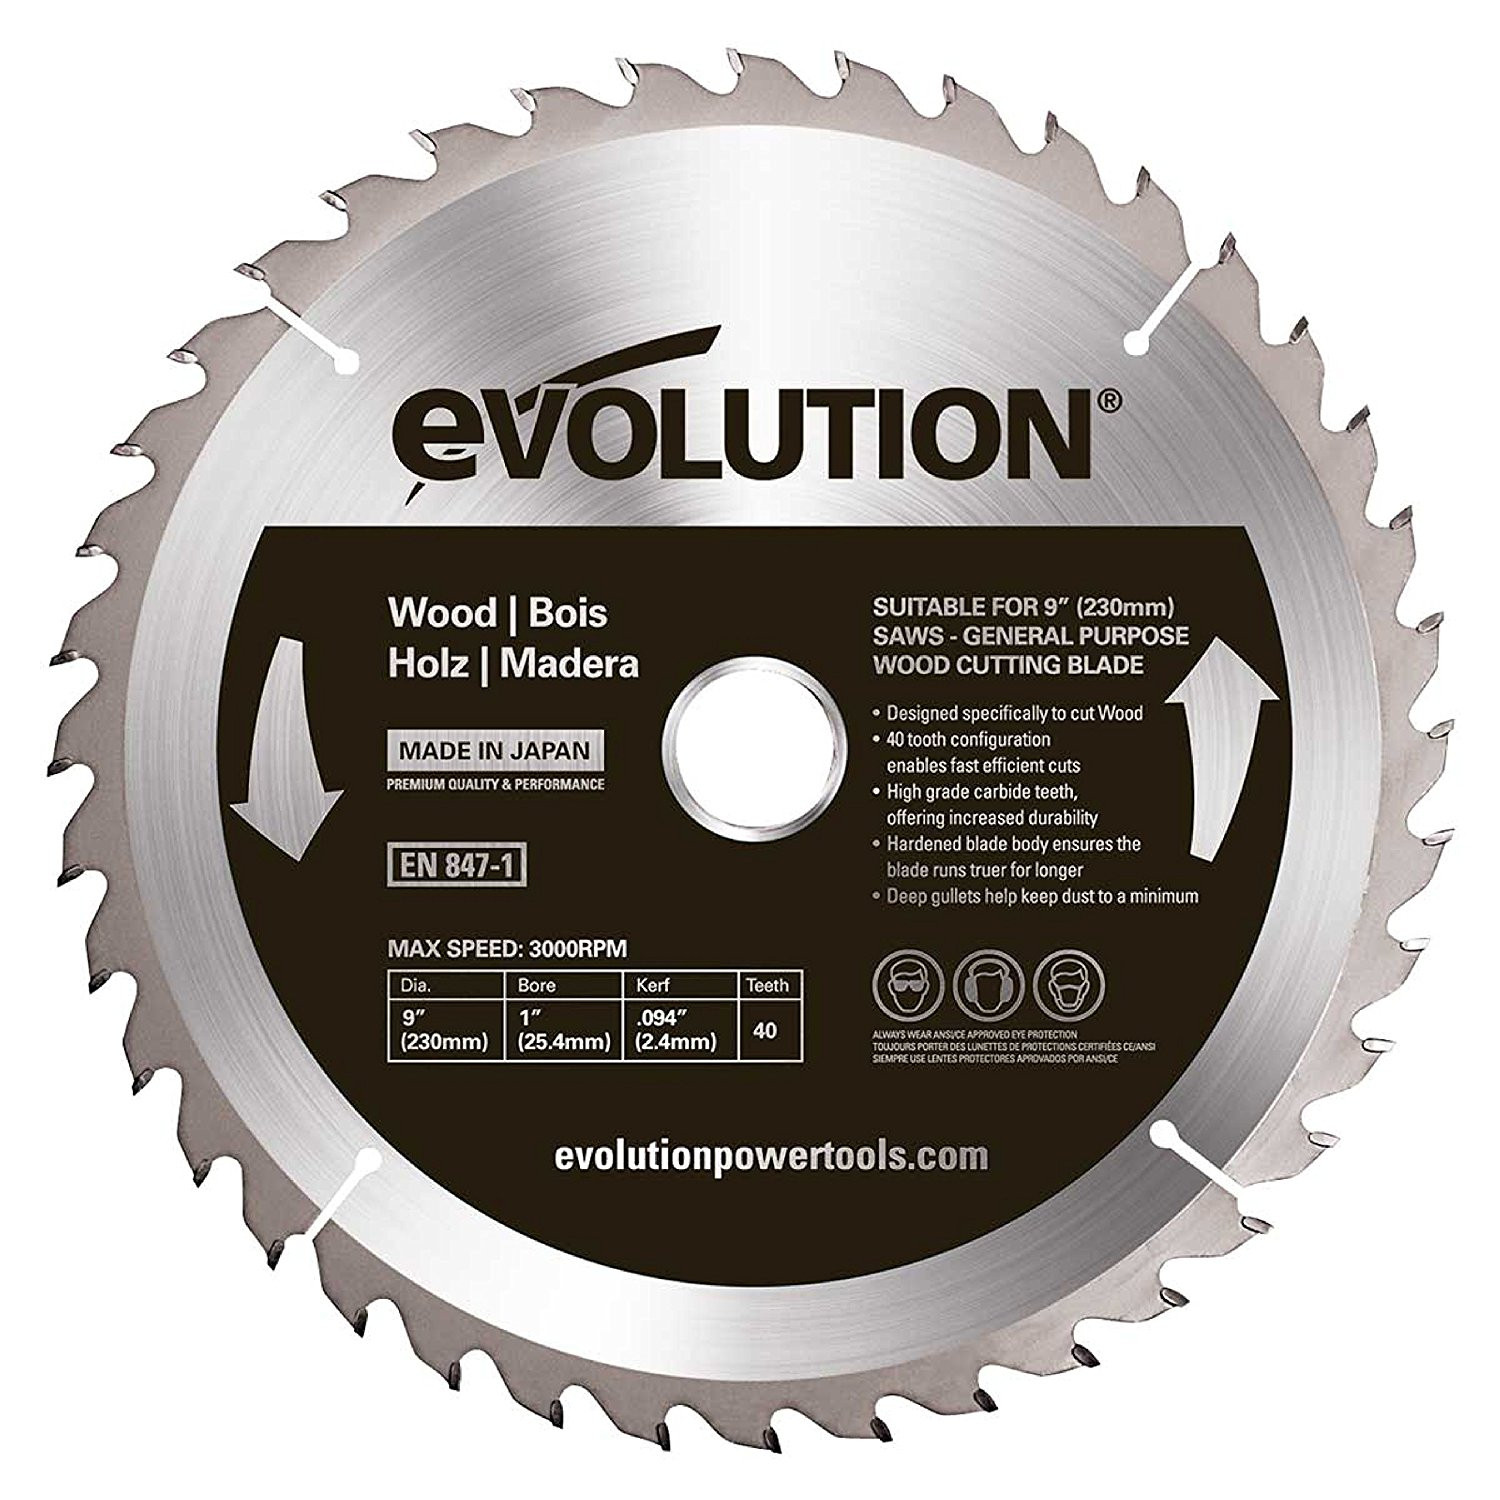 Evolution Zaagblad hout 230mm 30T EVO.230.HOUT - EVO.230.HOUT